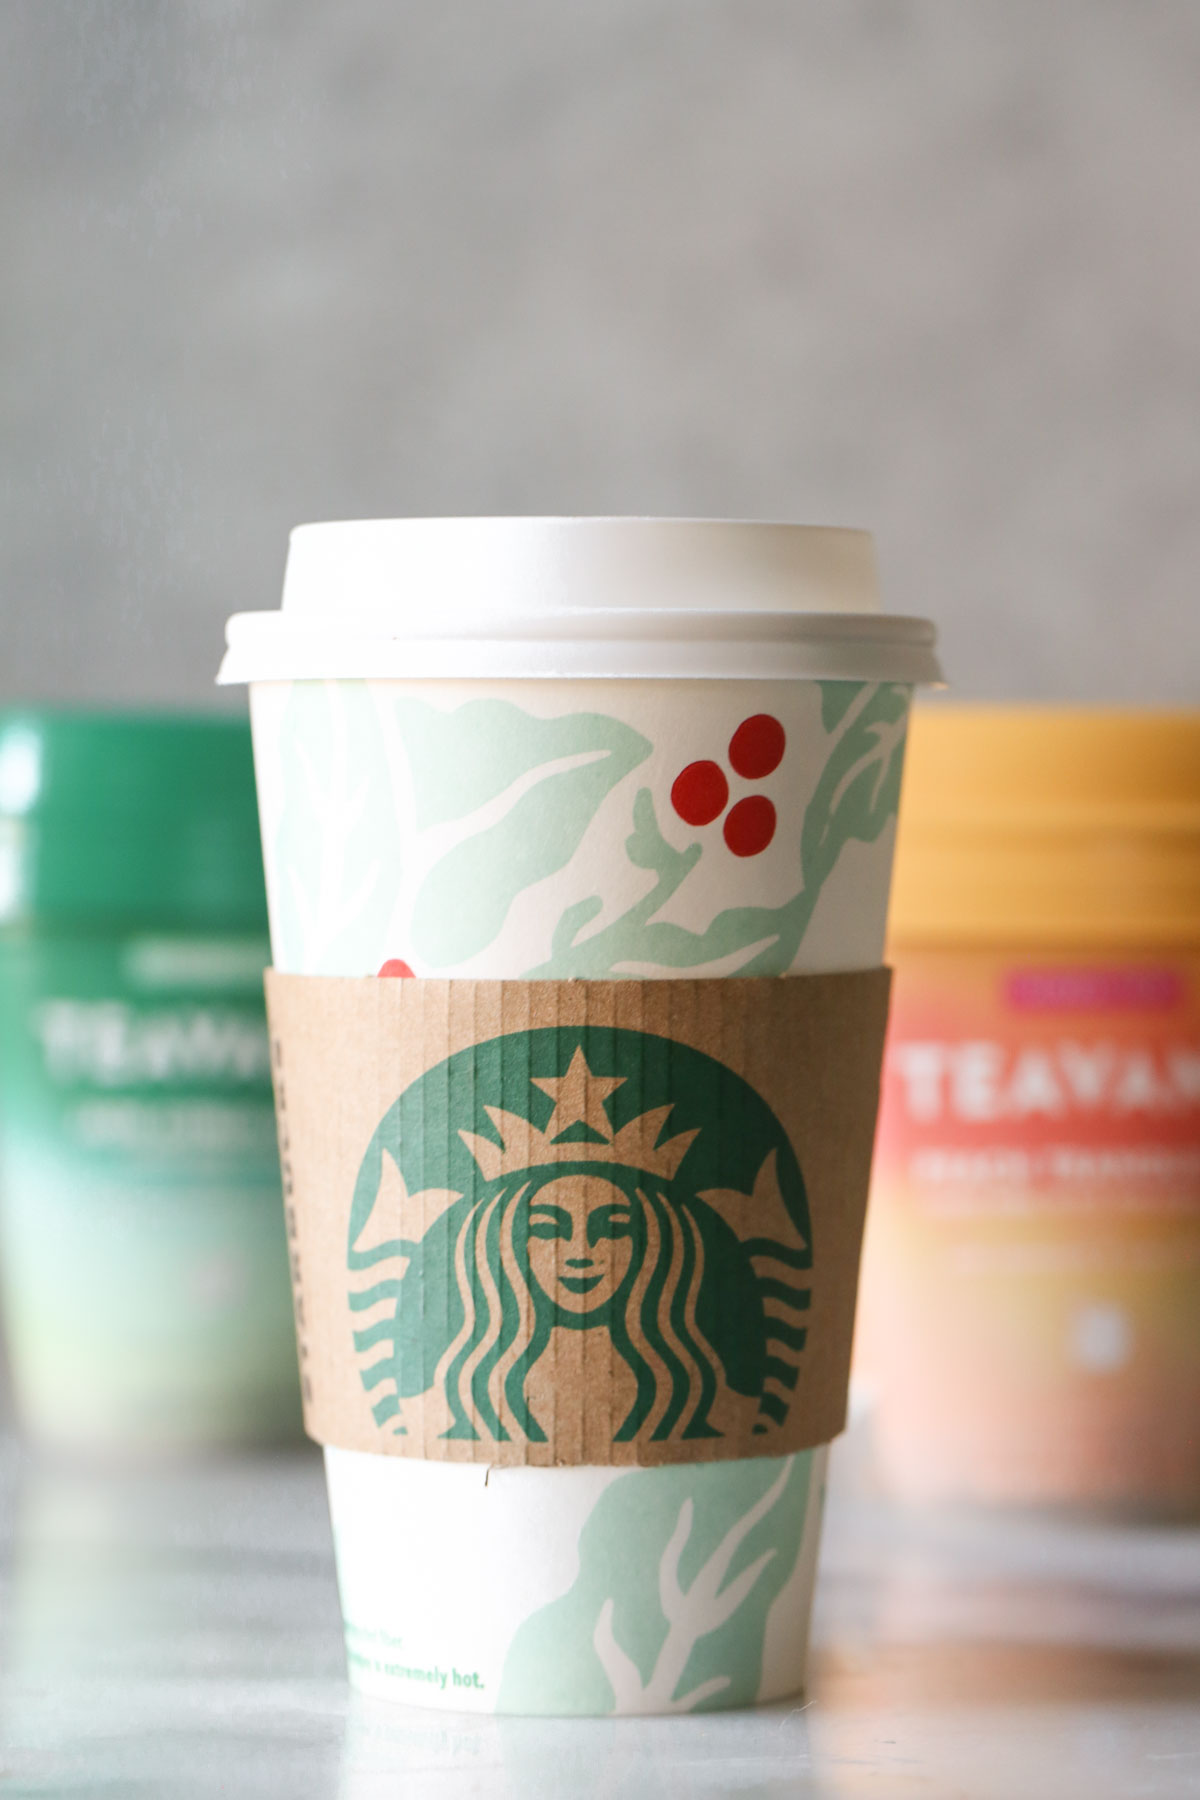 A Starbucks Medicine Ball Tea in a Starbucks hot cup, with the Teavana tea packages in the background.